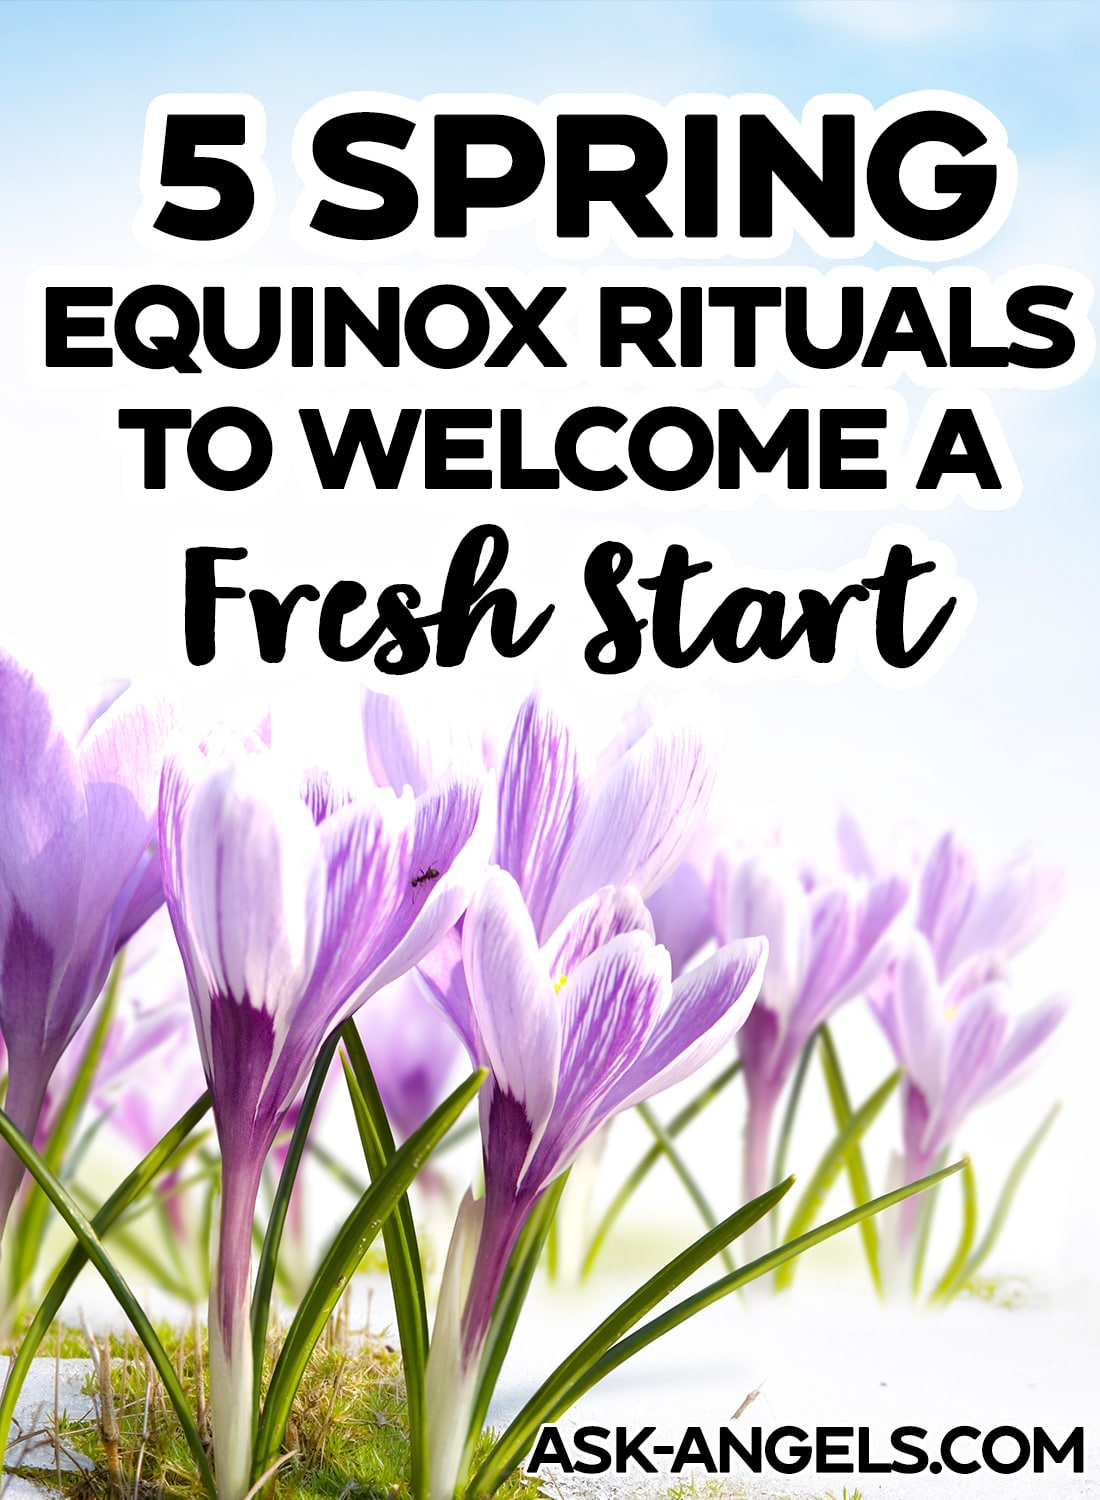 5 Spring Equinox Rituals to Welcome a Fresh Start